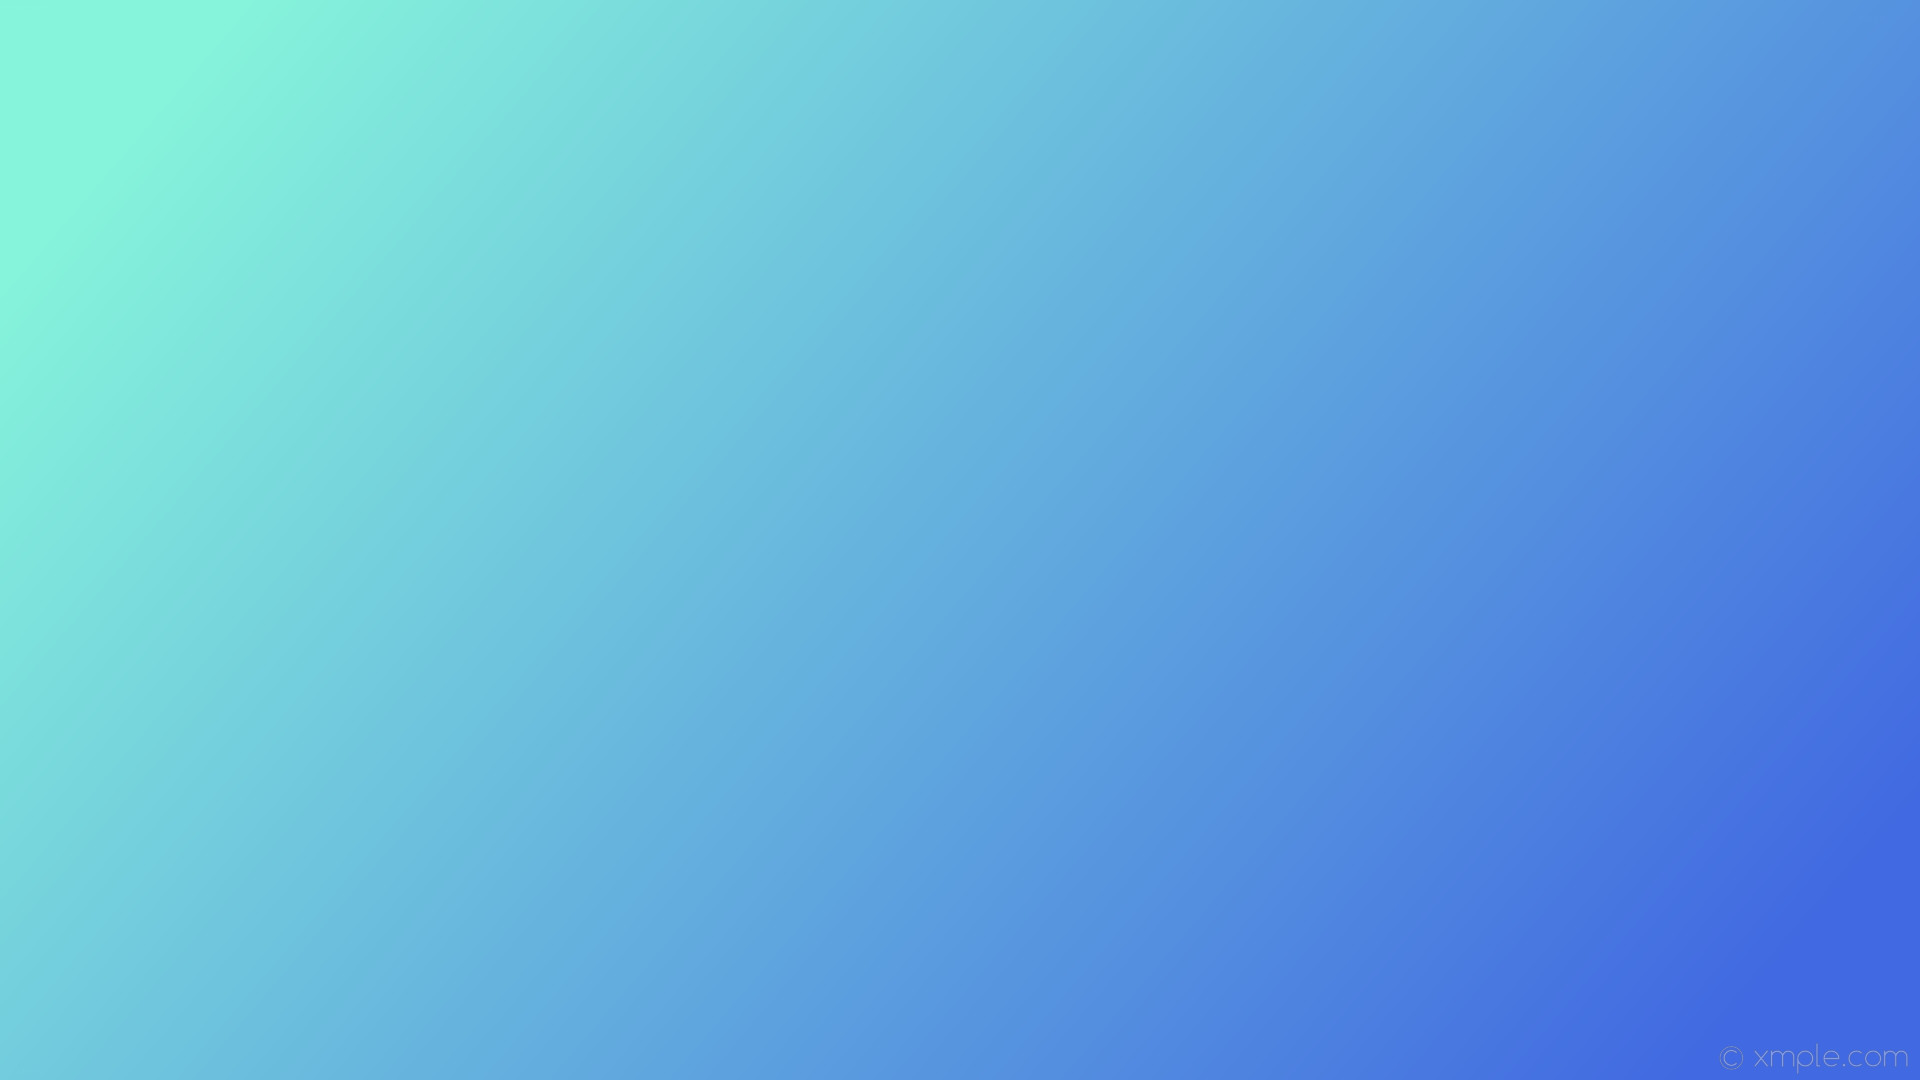 1920x1080 wallpaper cyan blue gradient linear royal blue #86f4db #4169e1 165°